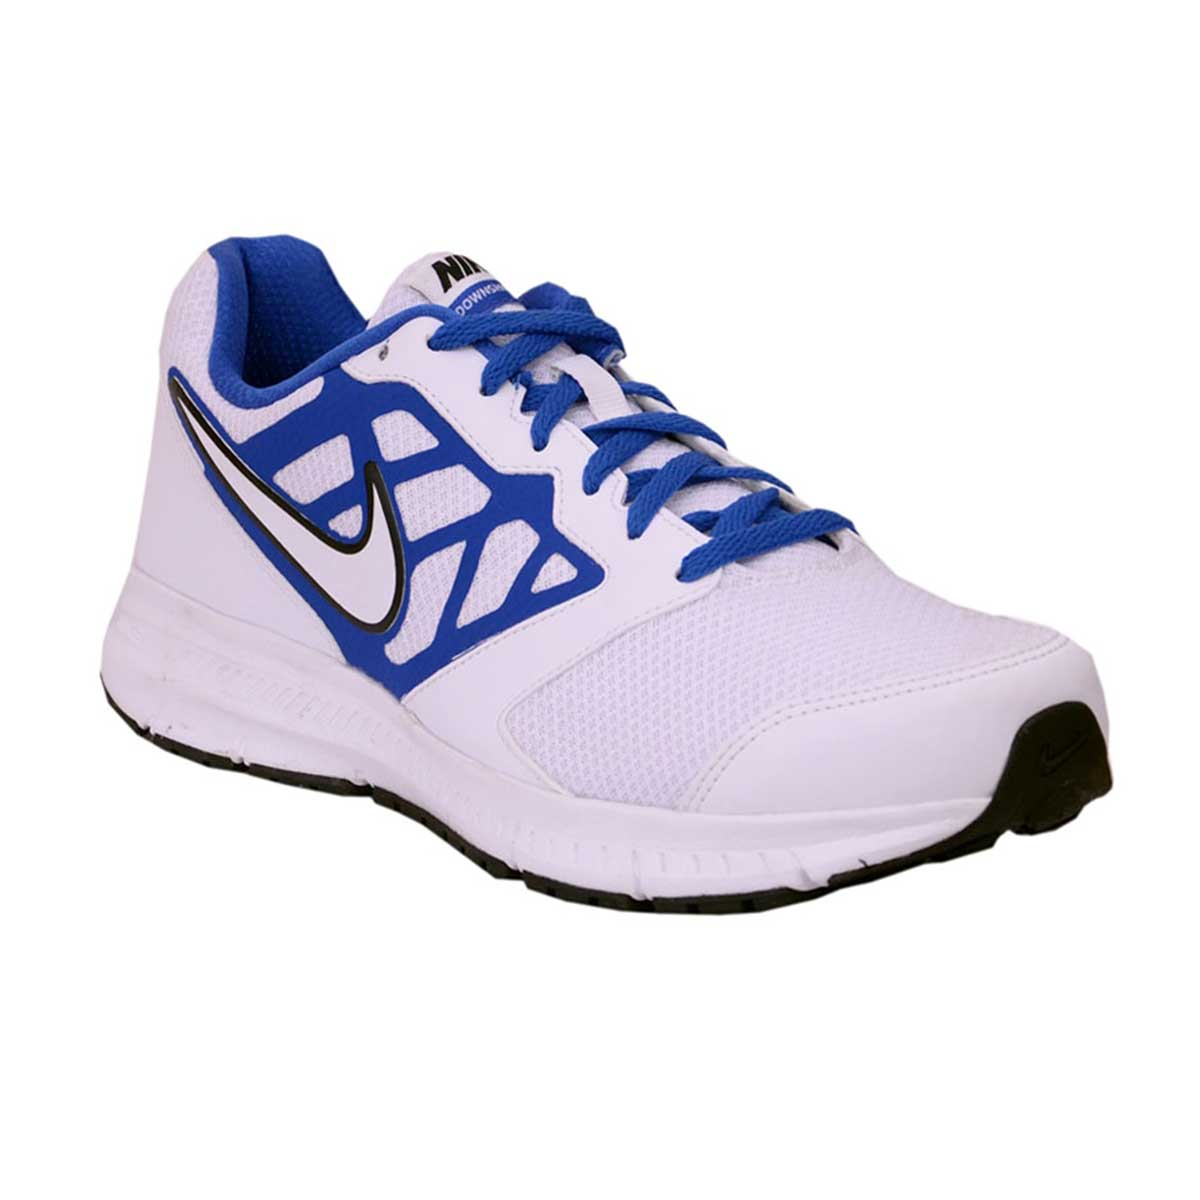 439914bfd1637 Buy Nike Downshifter 6 Running Shoes (White Blue) Online India